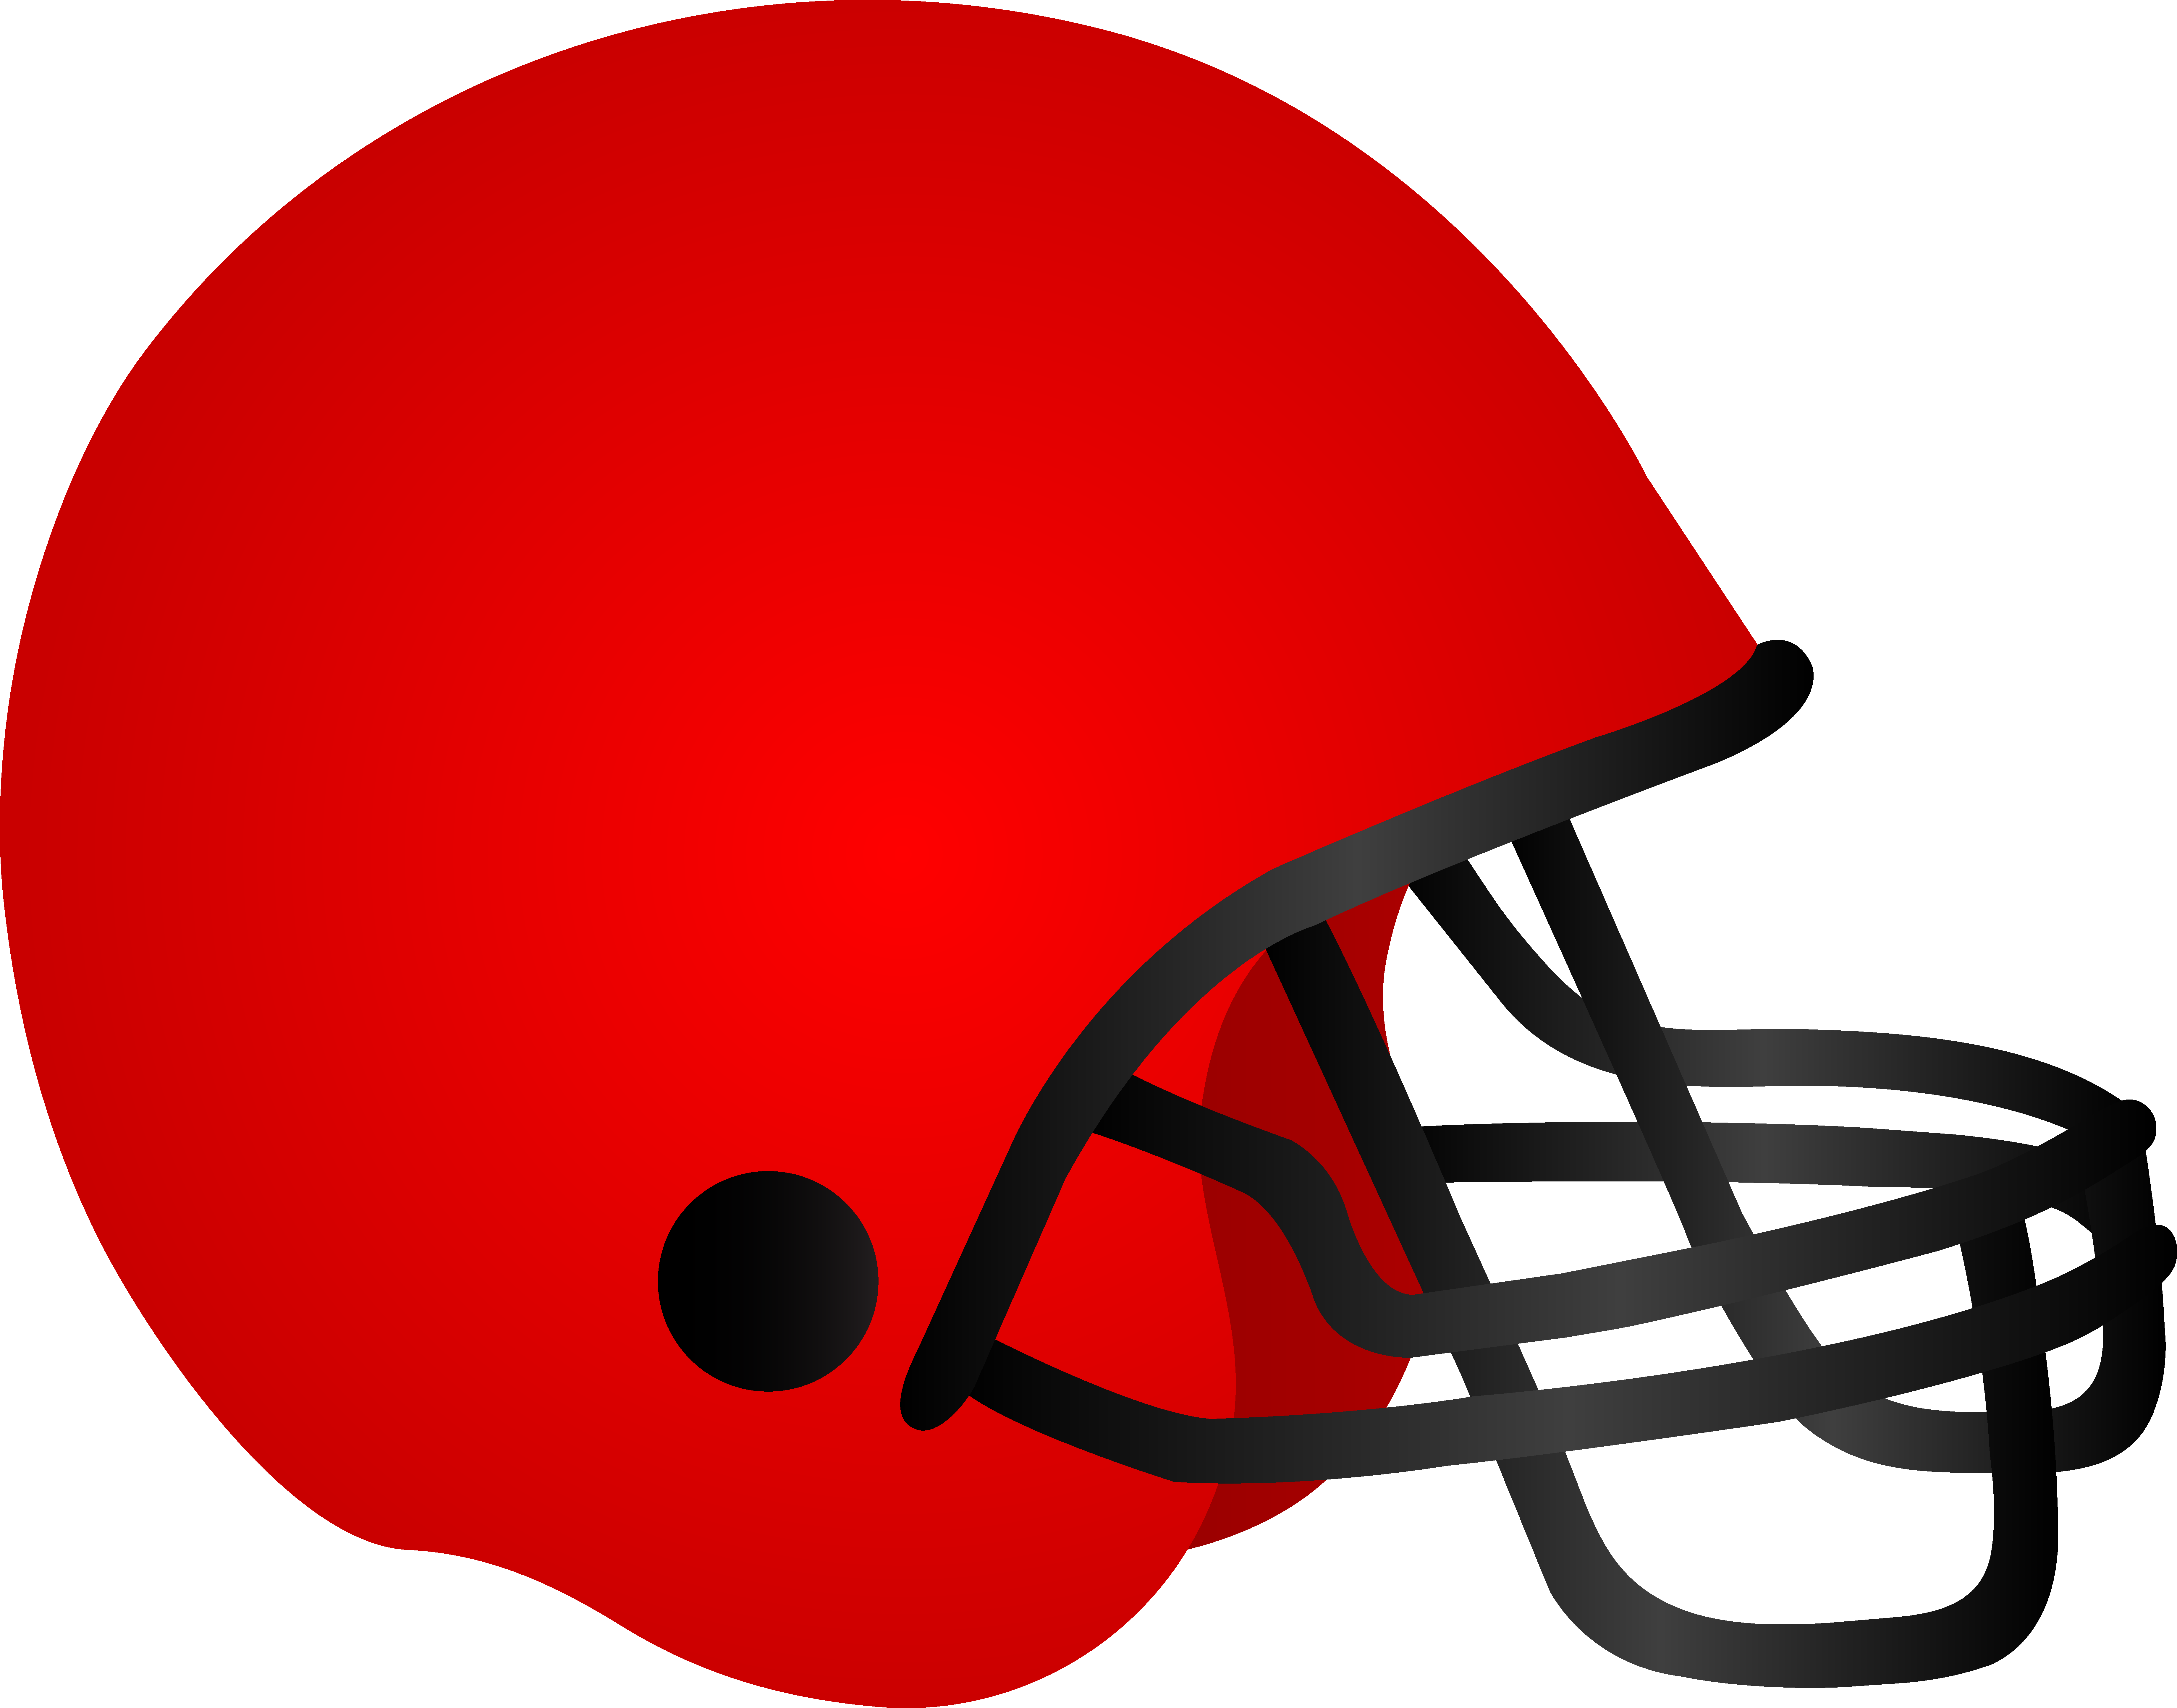 7362x5777 Red Football Helmet